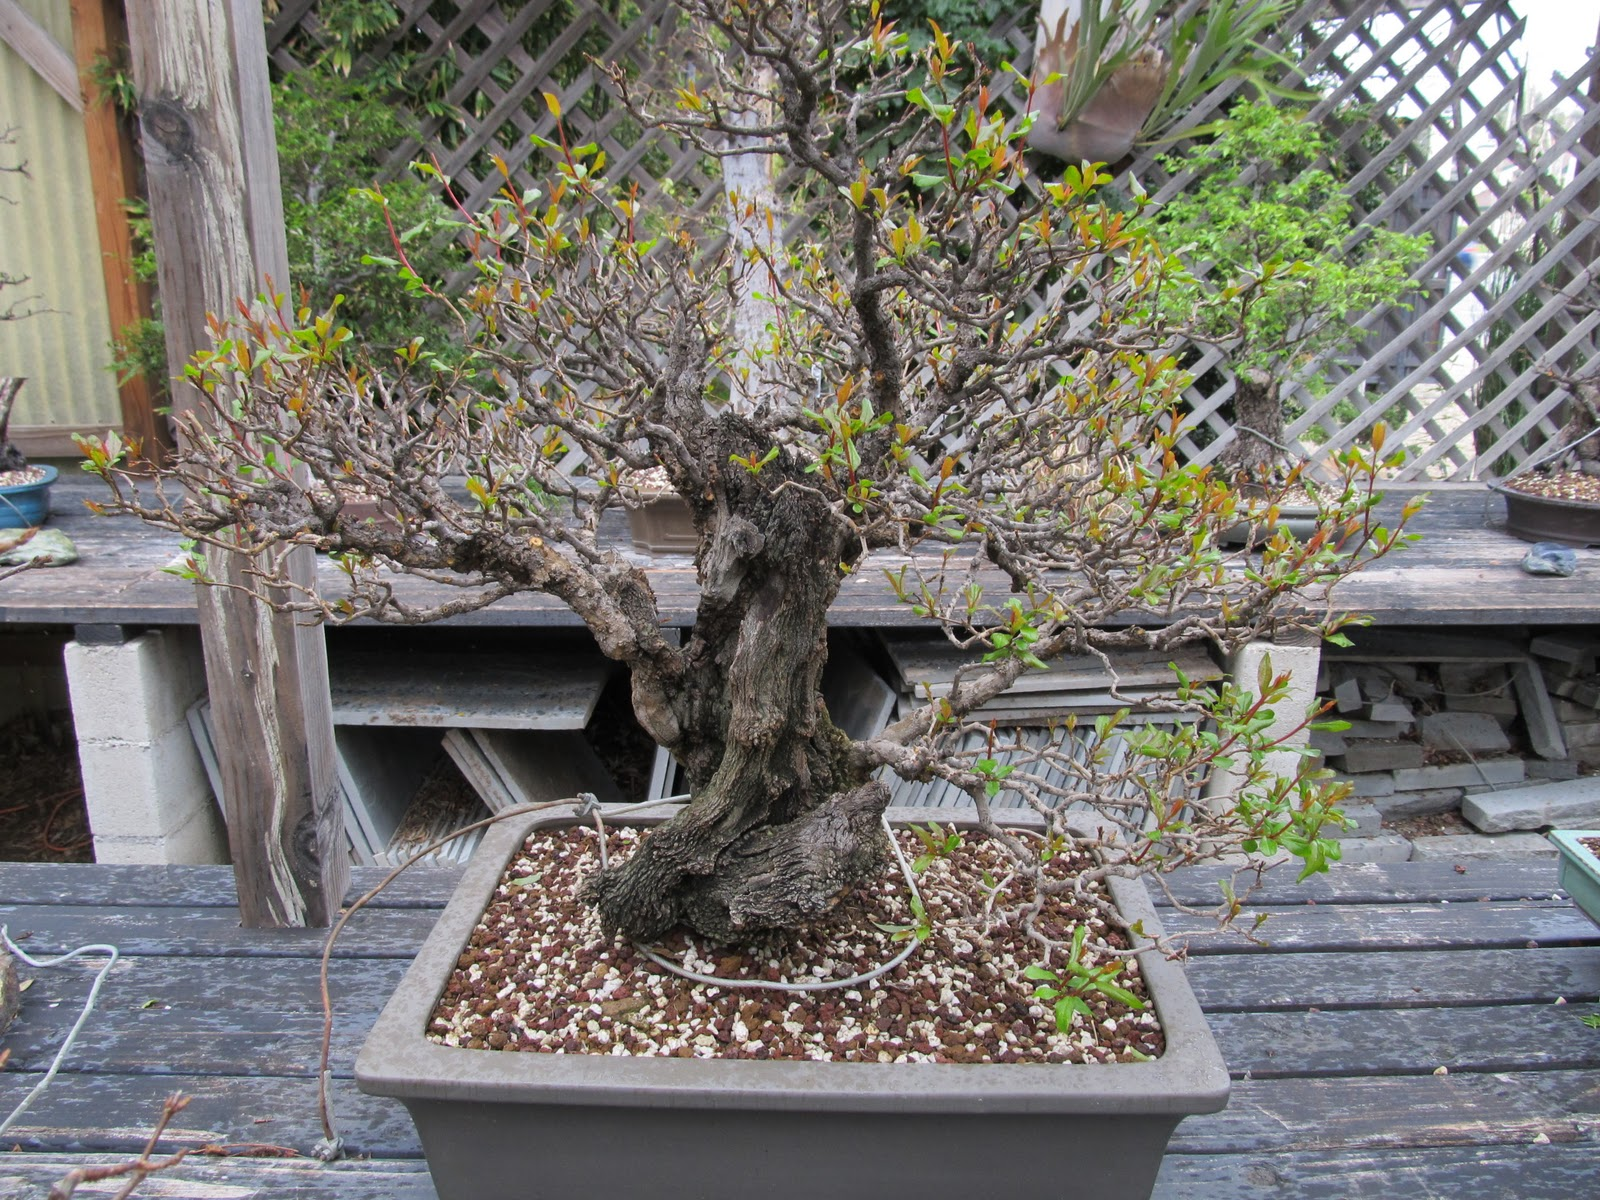 Bonsaibp39s Bonsai Blog Spring At Kimura Bonsai